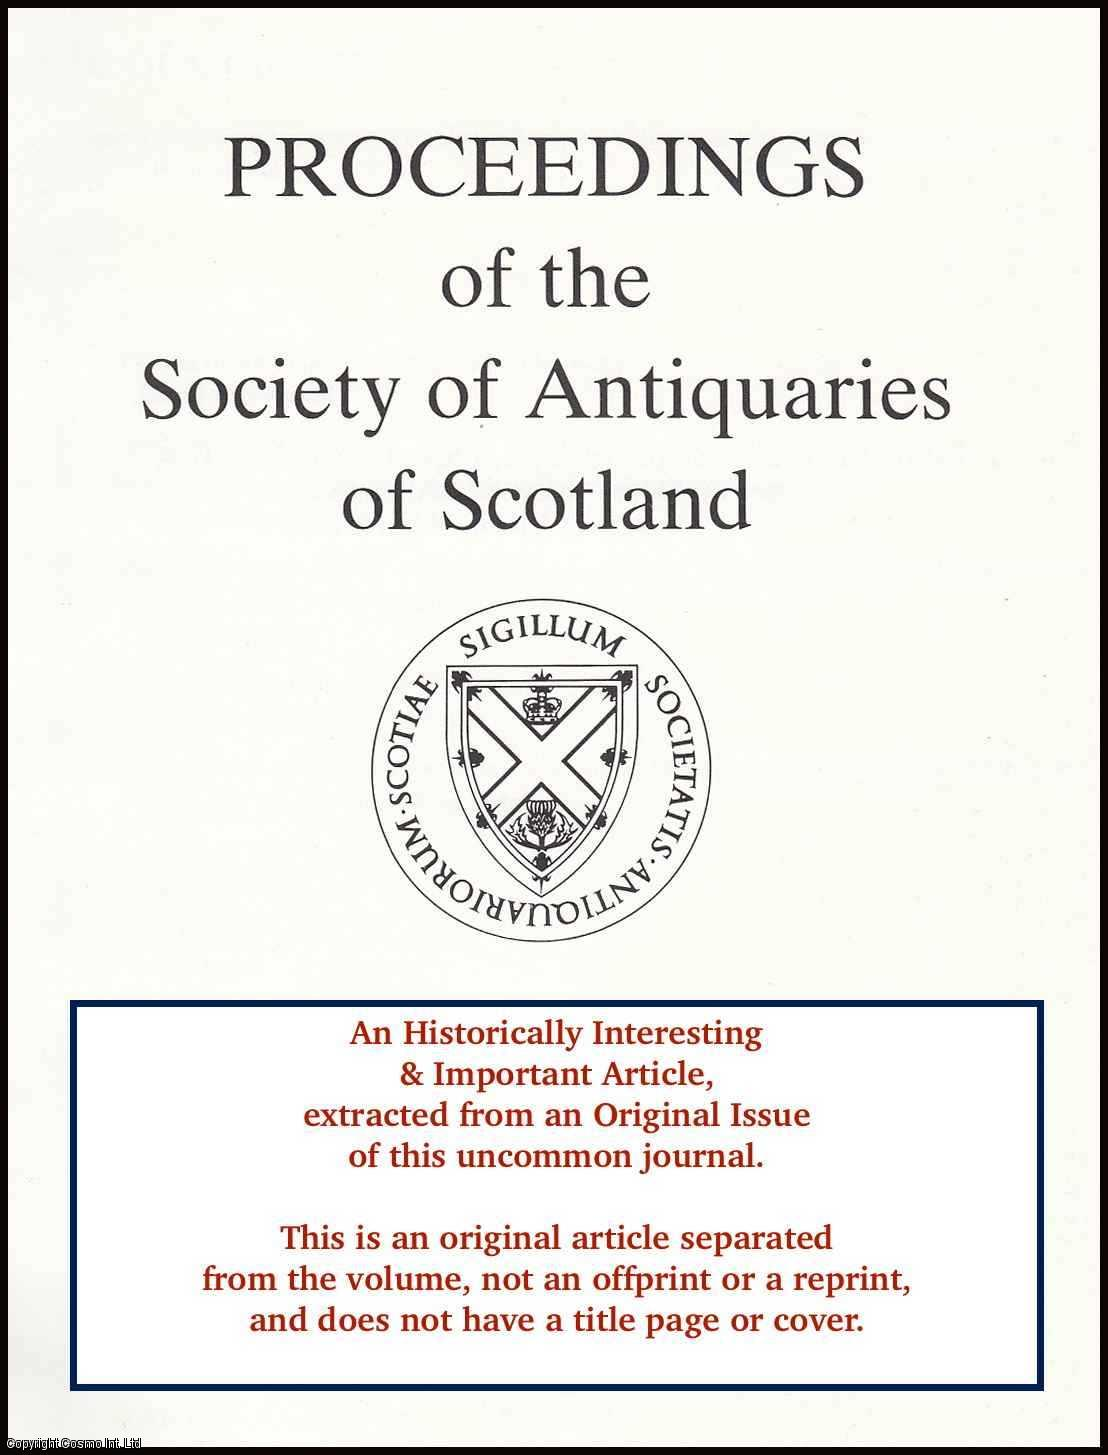 NORMAN, A. V. B. - Prince Charles Edward's Silver-Hilted Back-Sword. An original article from the Proceedings of the Society of Antiquaries of Scotland, 1977.